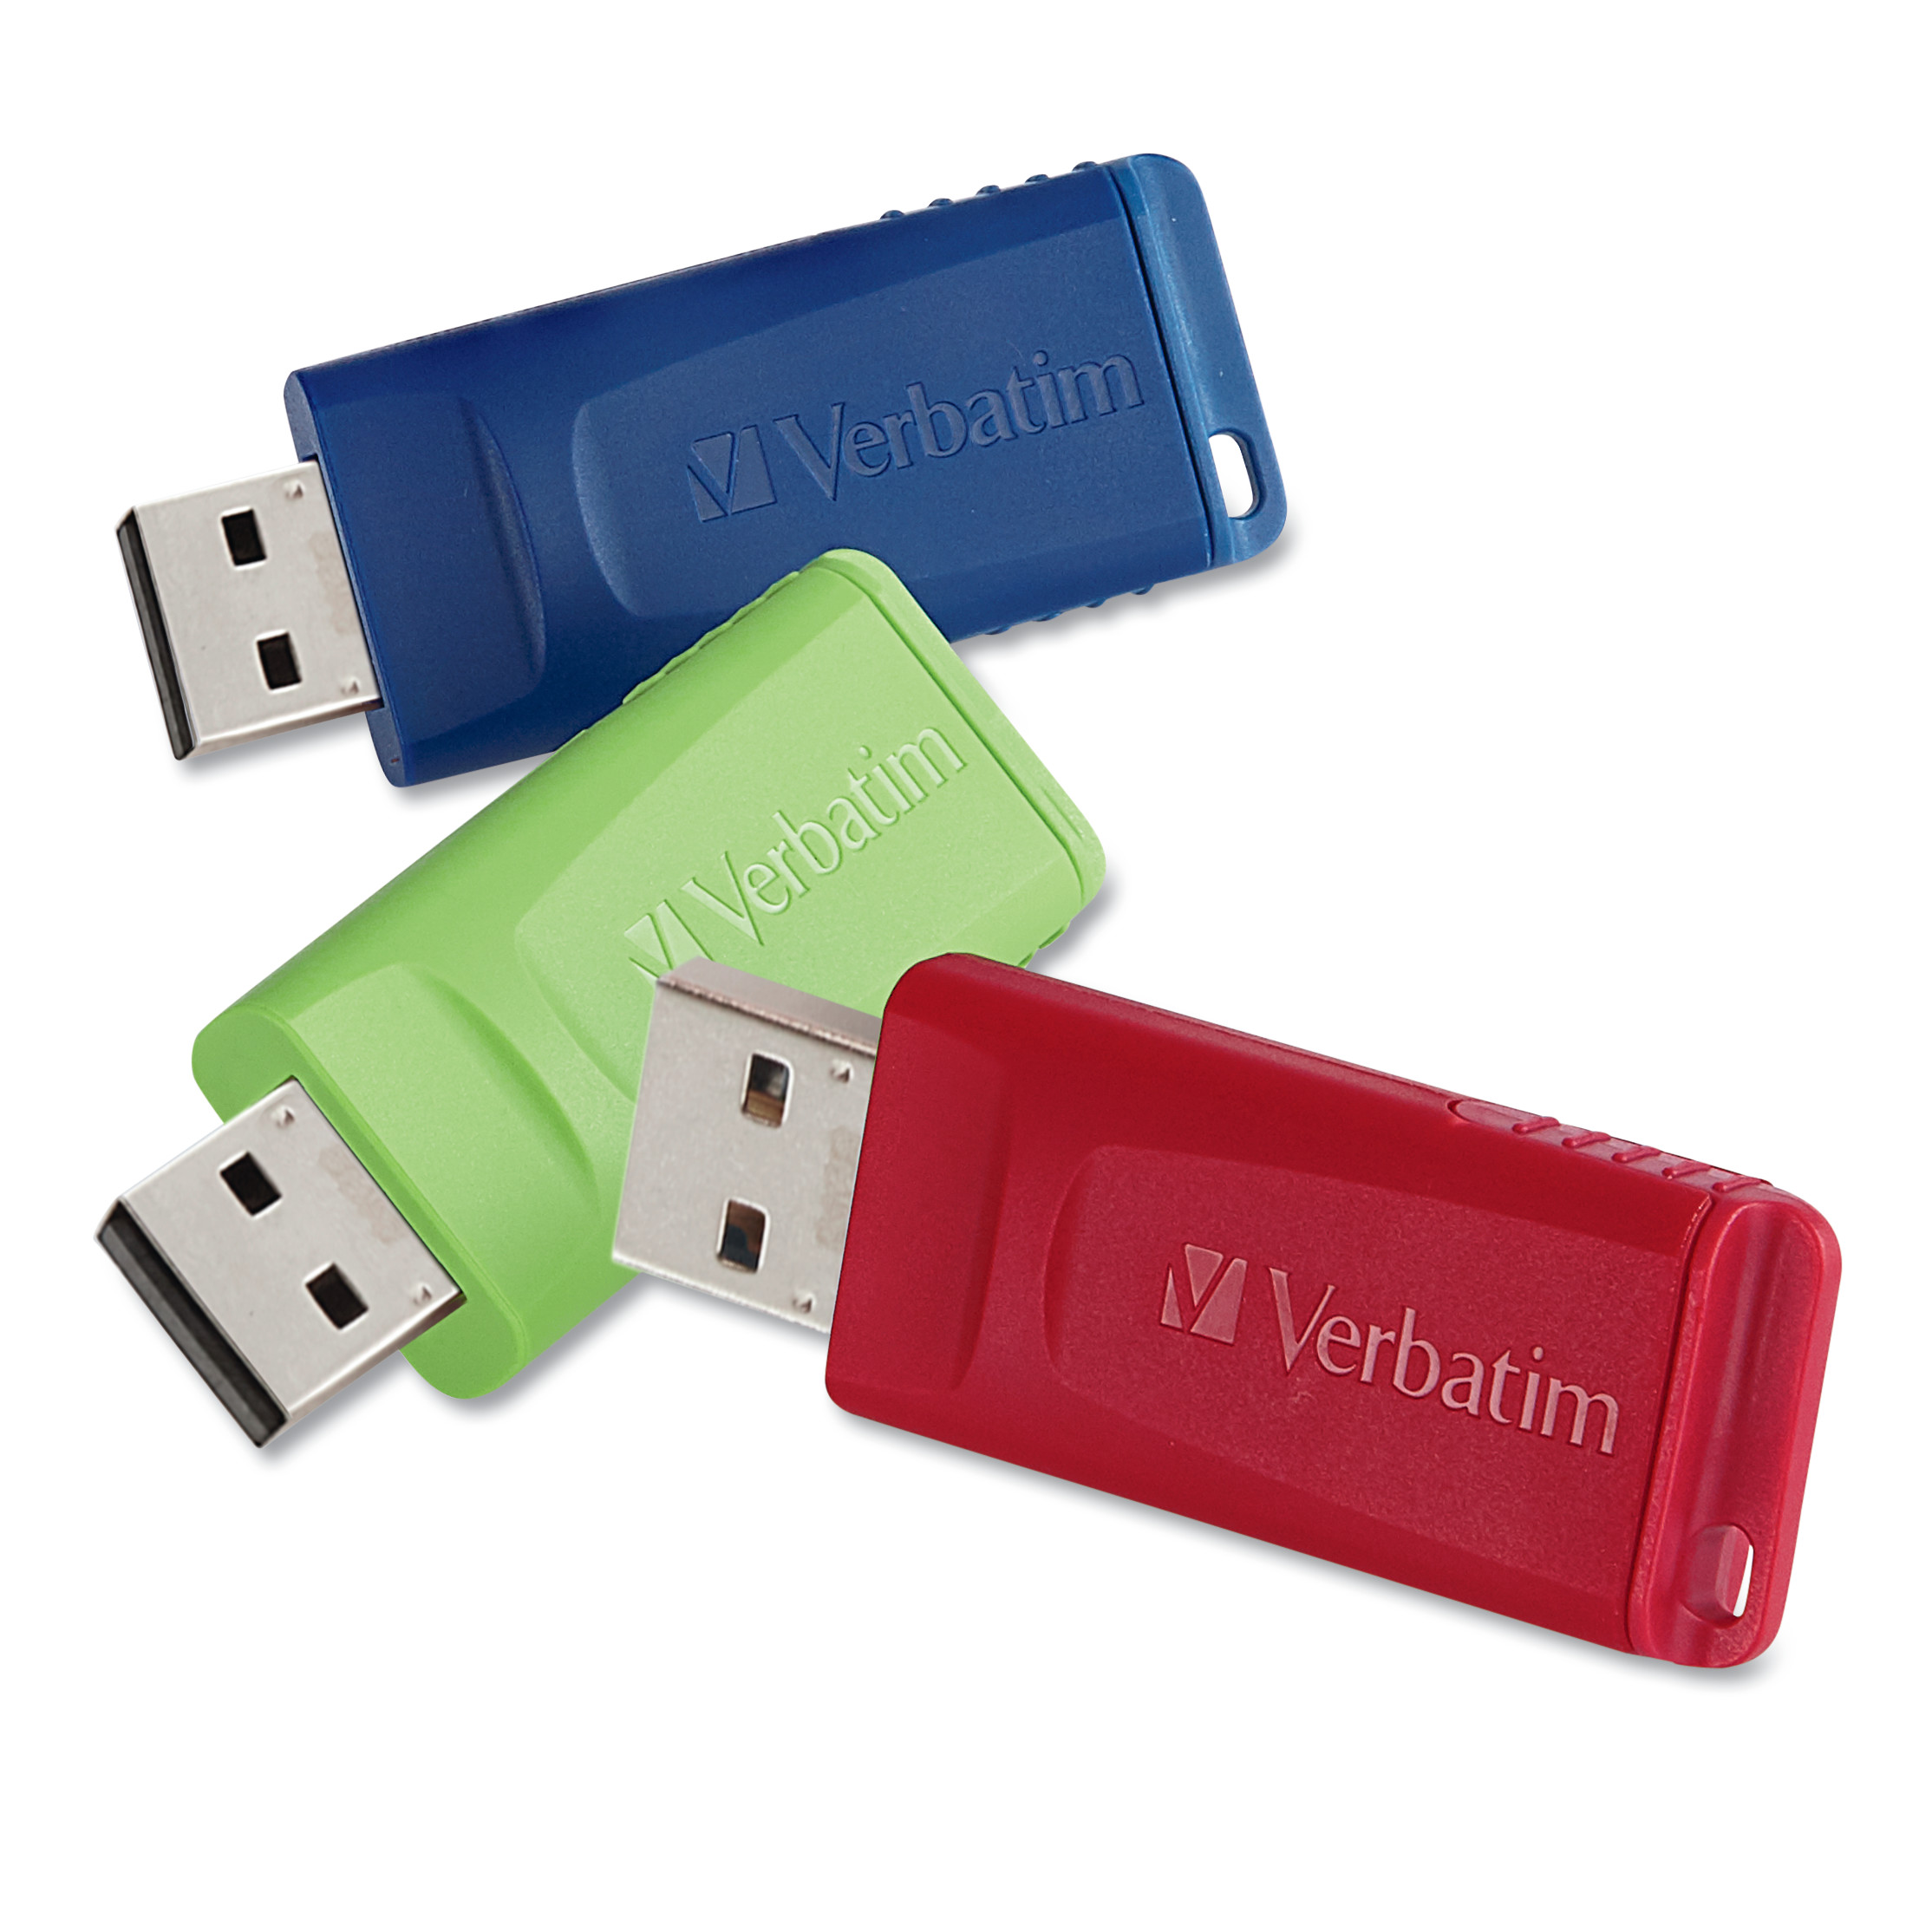 Verbatim Store 'n' Go USB Flash Drive, 16GB, Blue, Green, Red, 3/Pack -VER99122